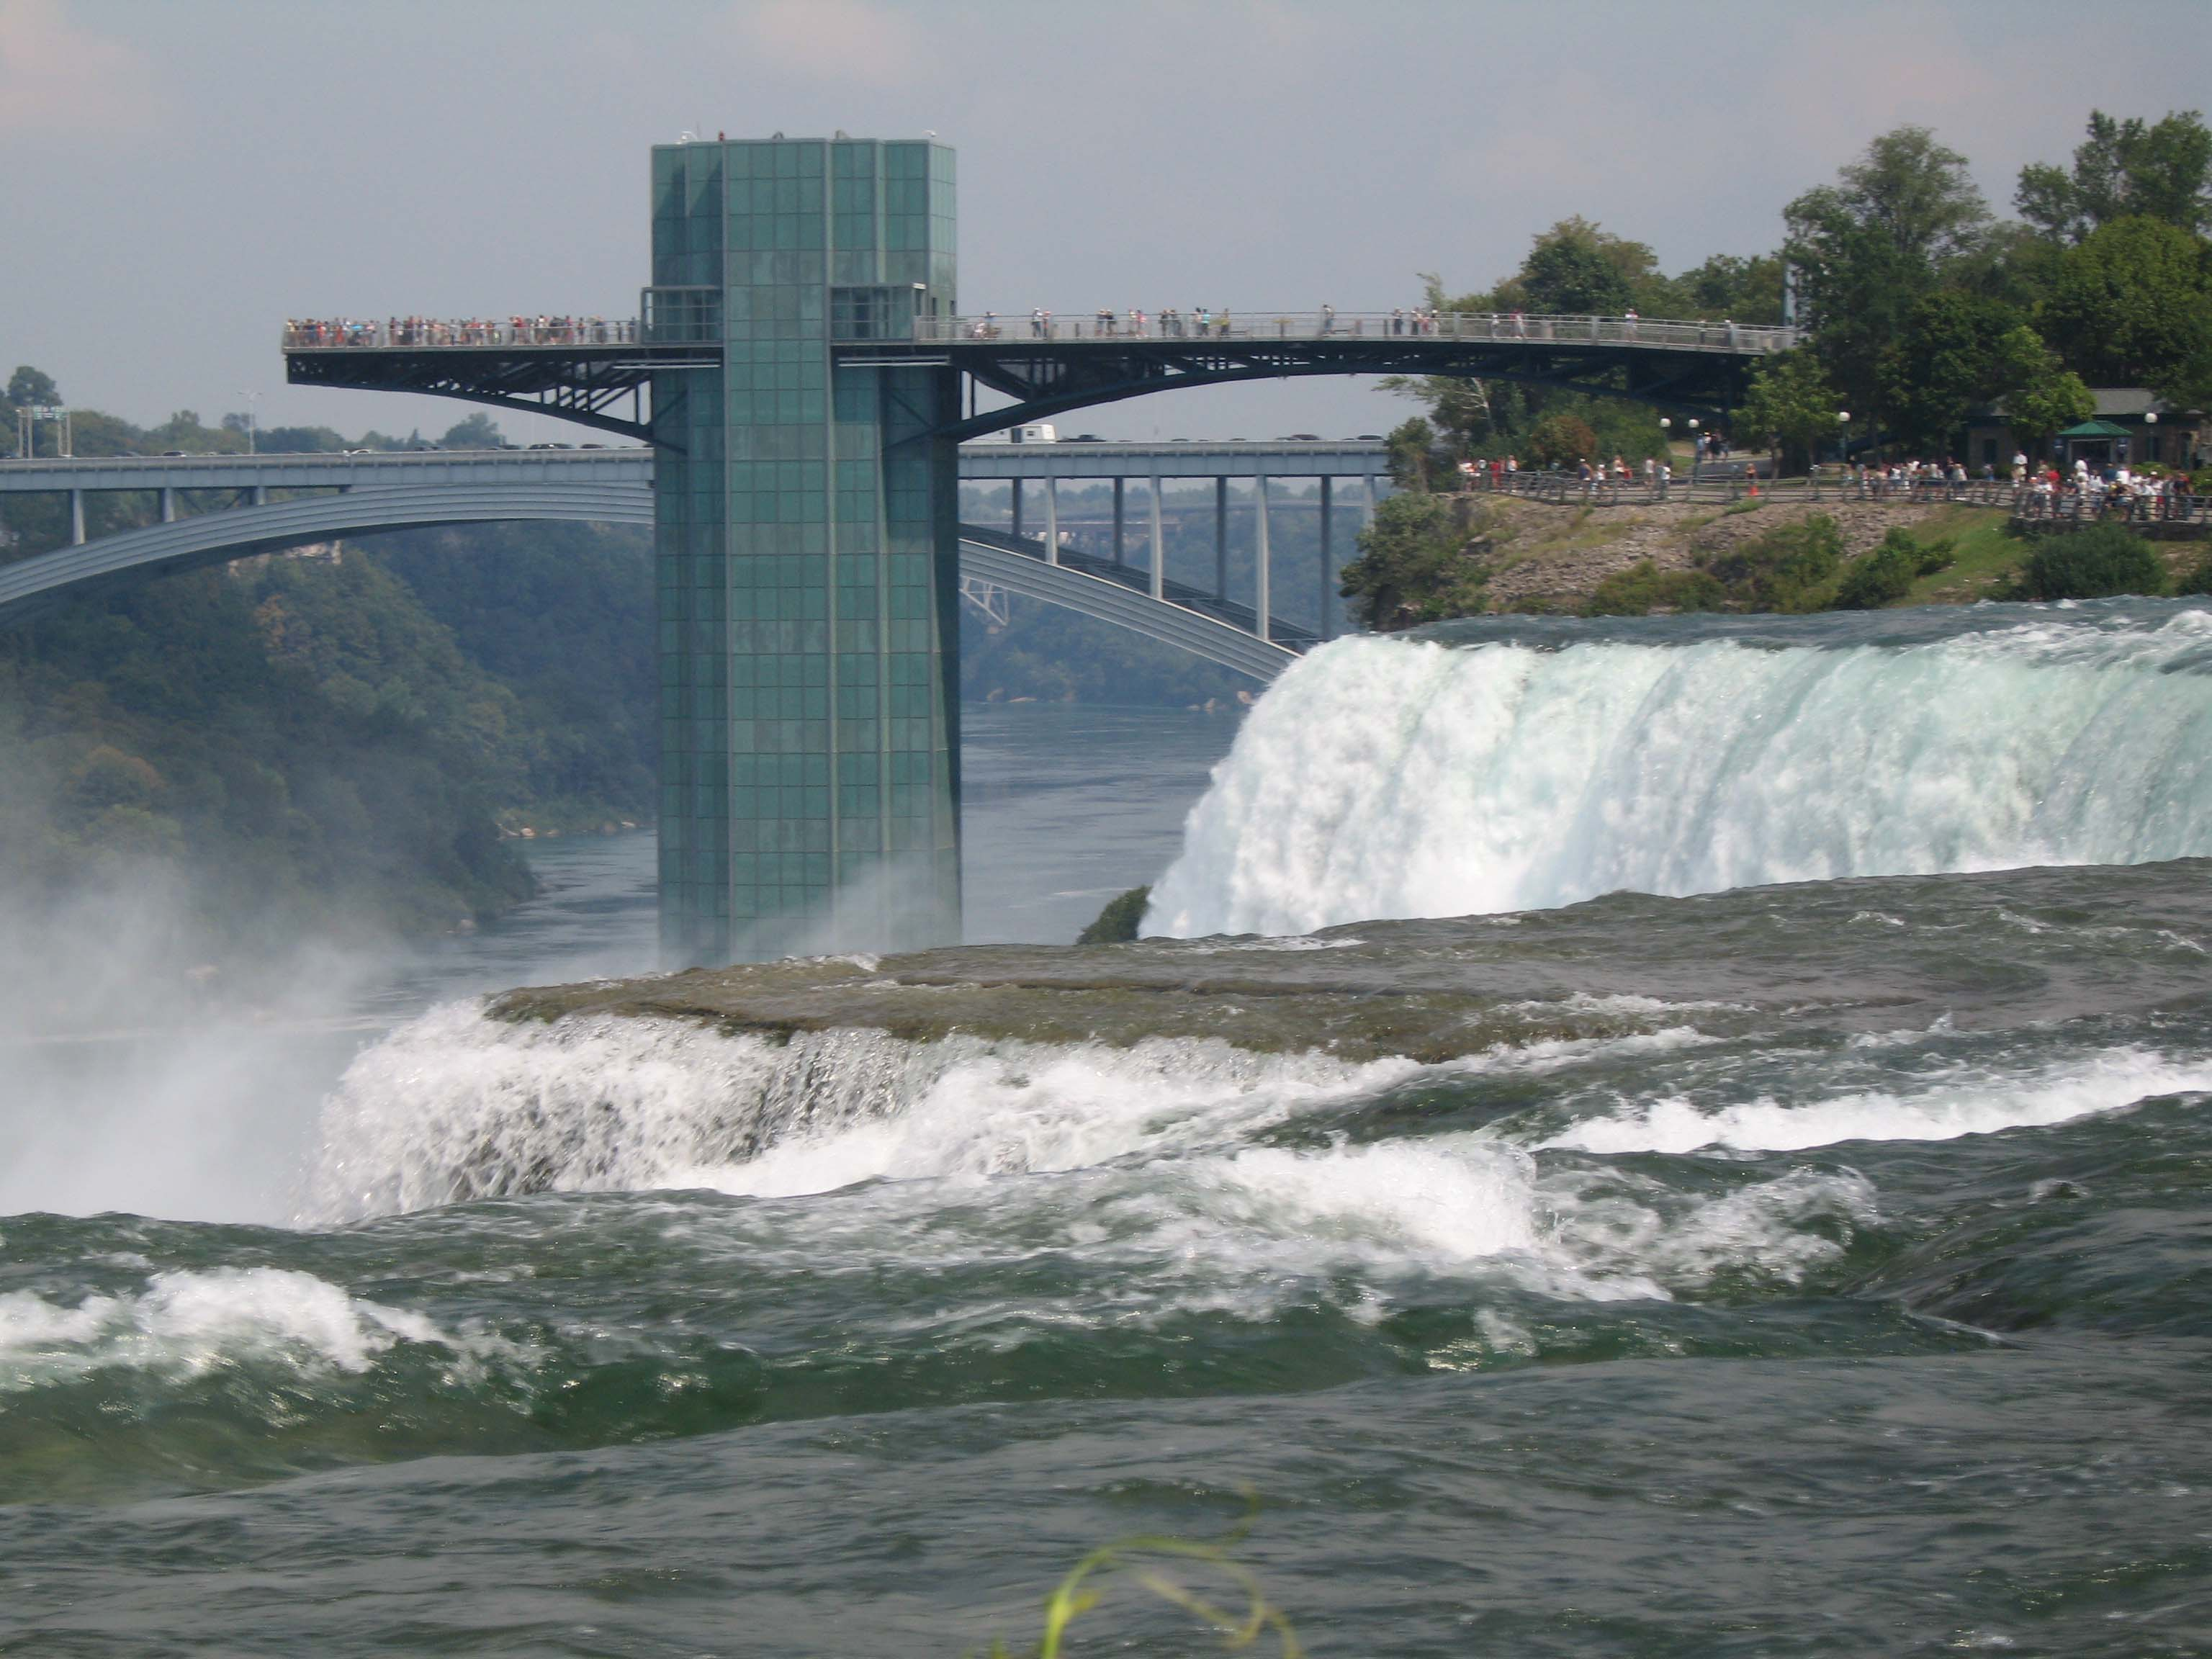 hd niagara falls canada top attractions and activities images